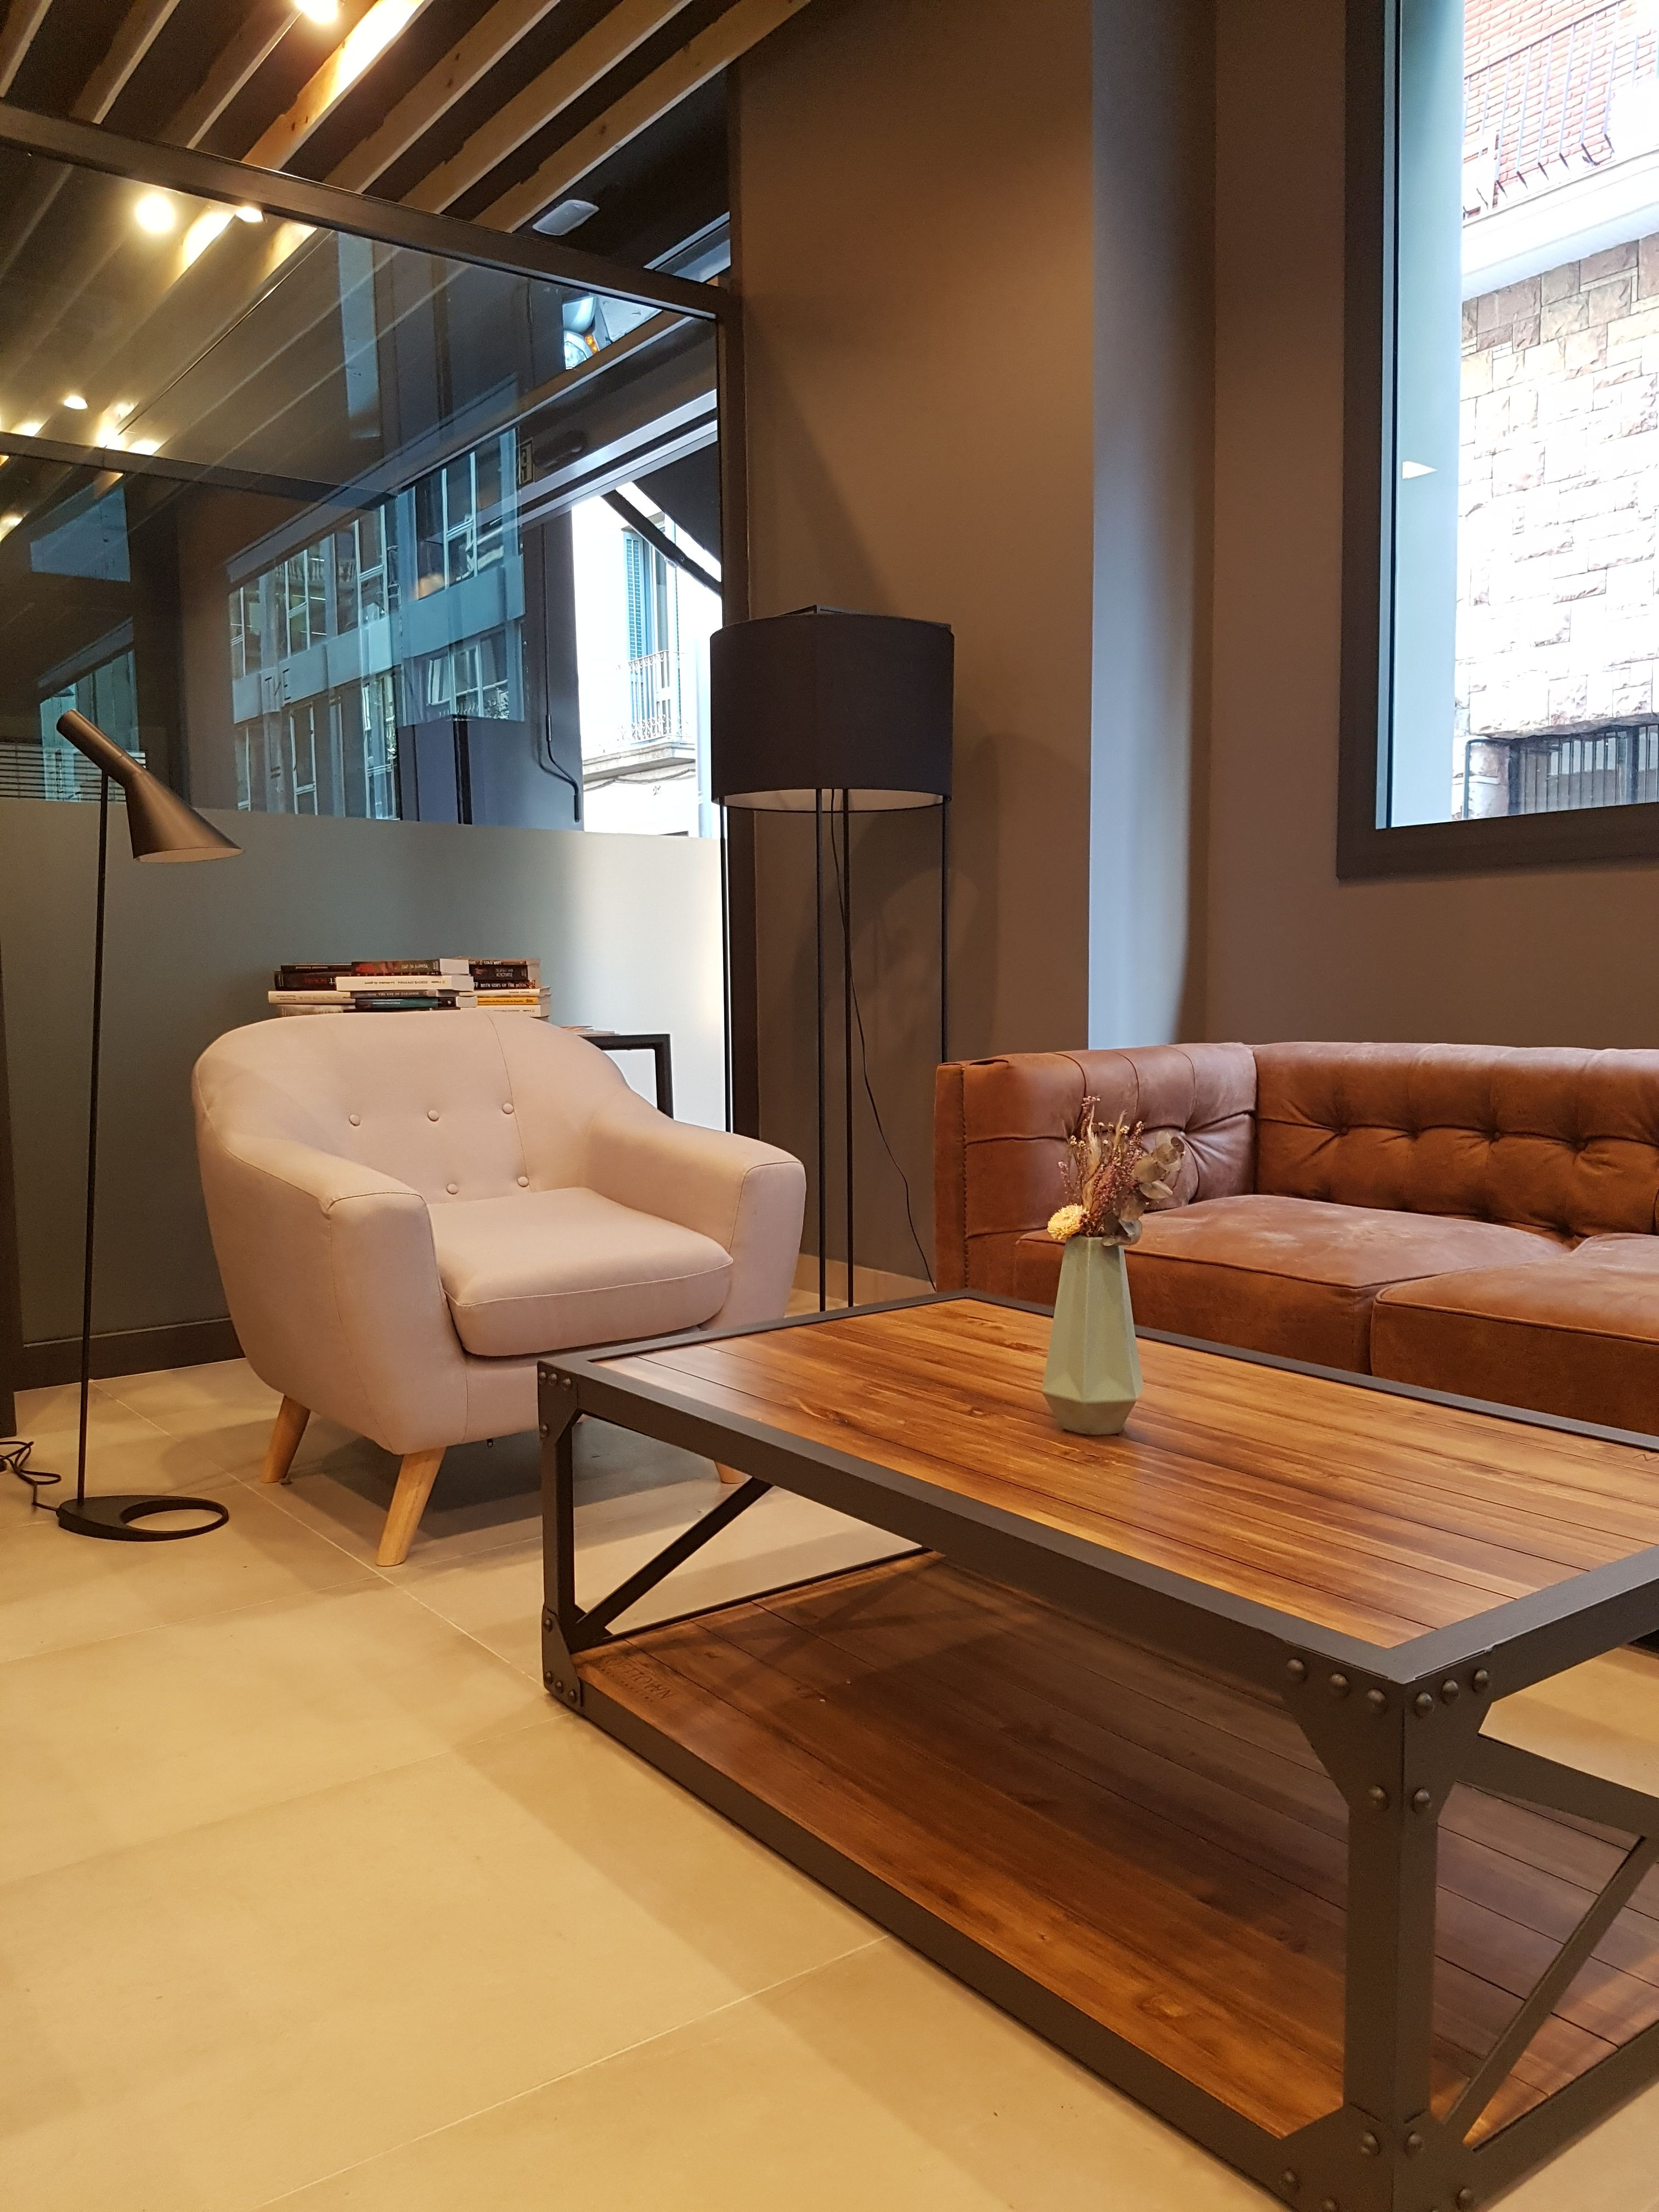 Pin by SuperStudio ES on Muebles de diseño en residencia Pinterest